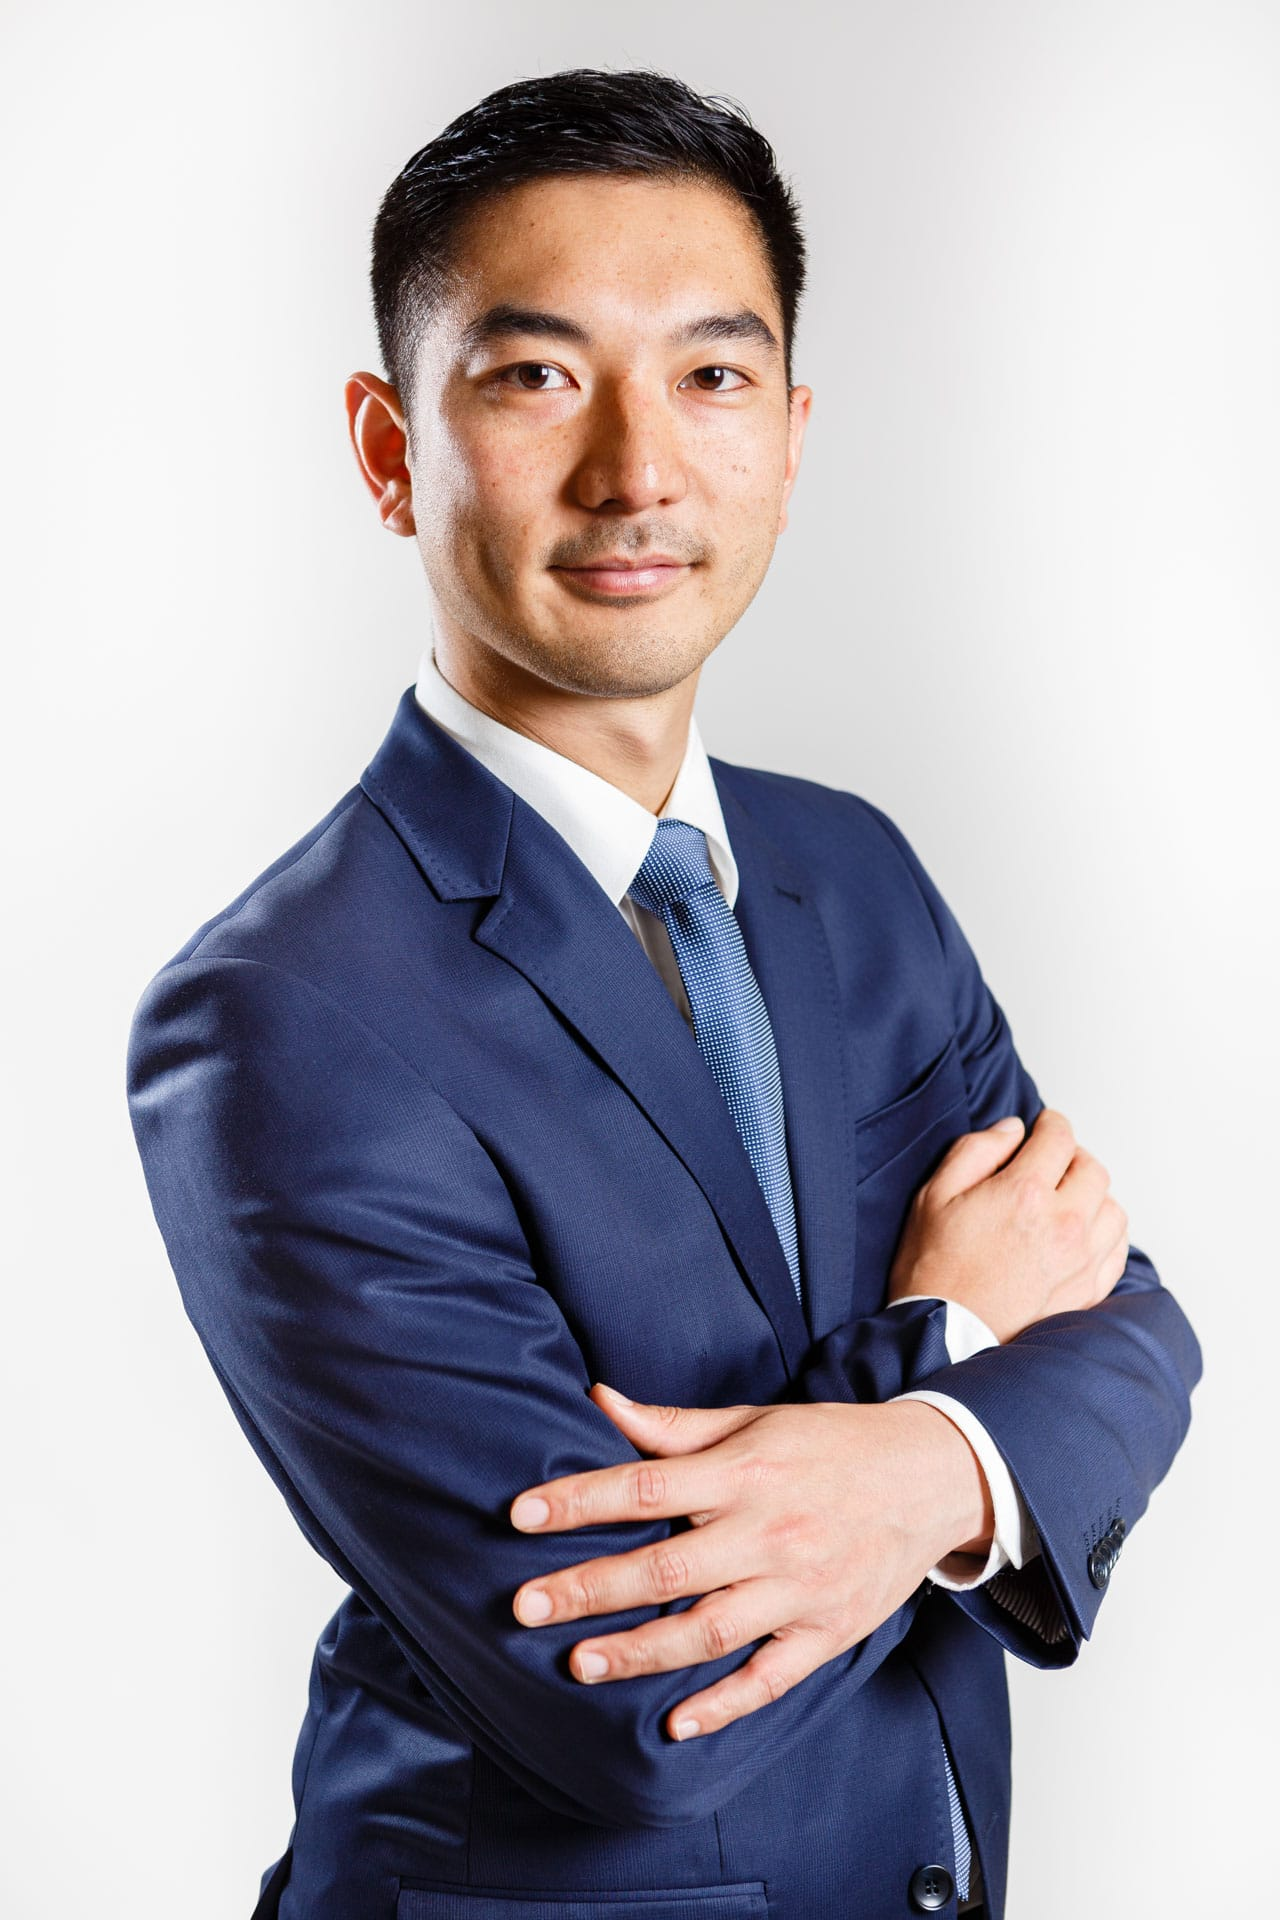 professional corporate portrait head shot of real estate agent man smiling dressed in dark blue suit white shirt and mid blue ties